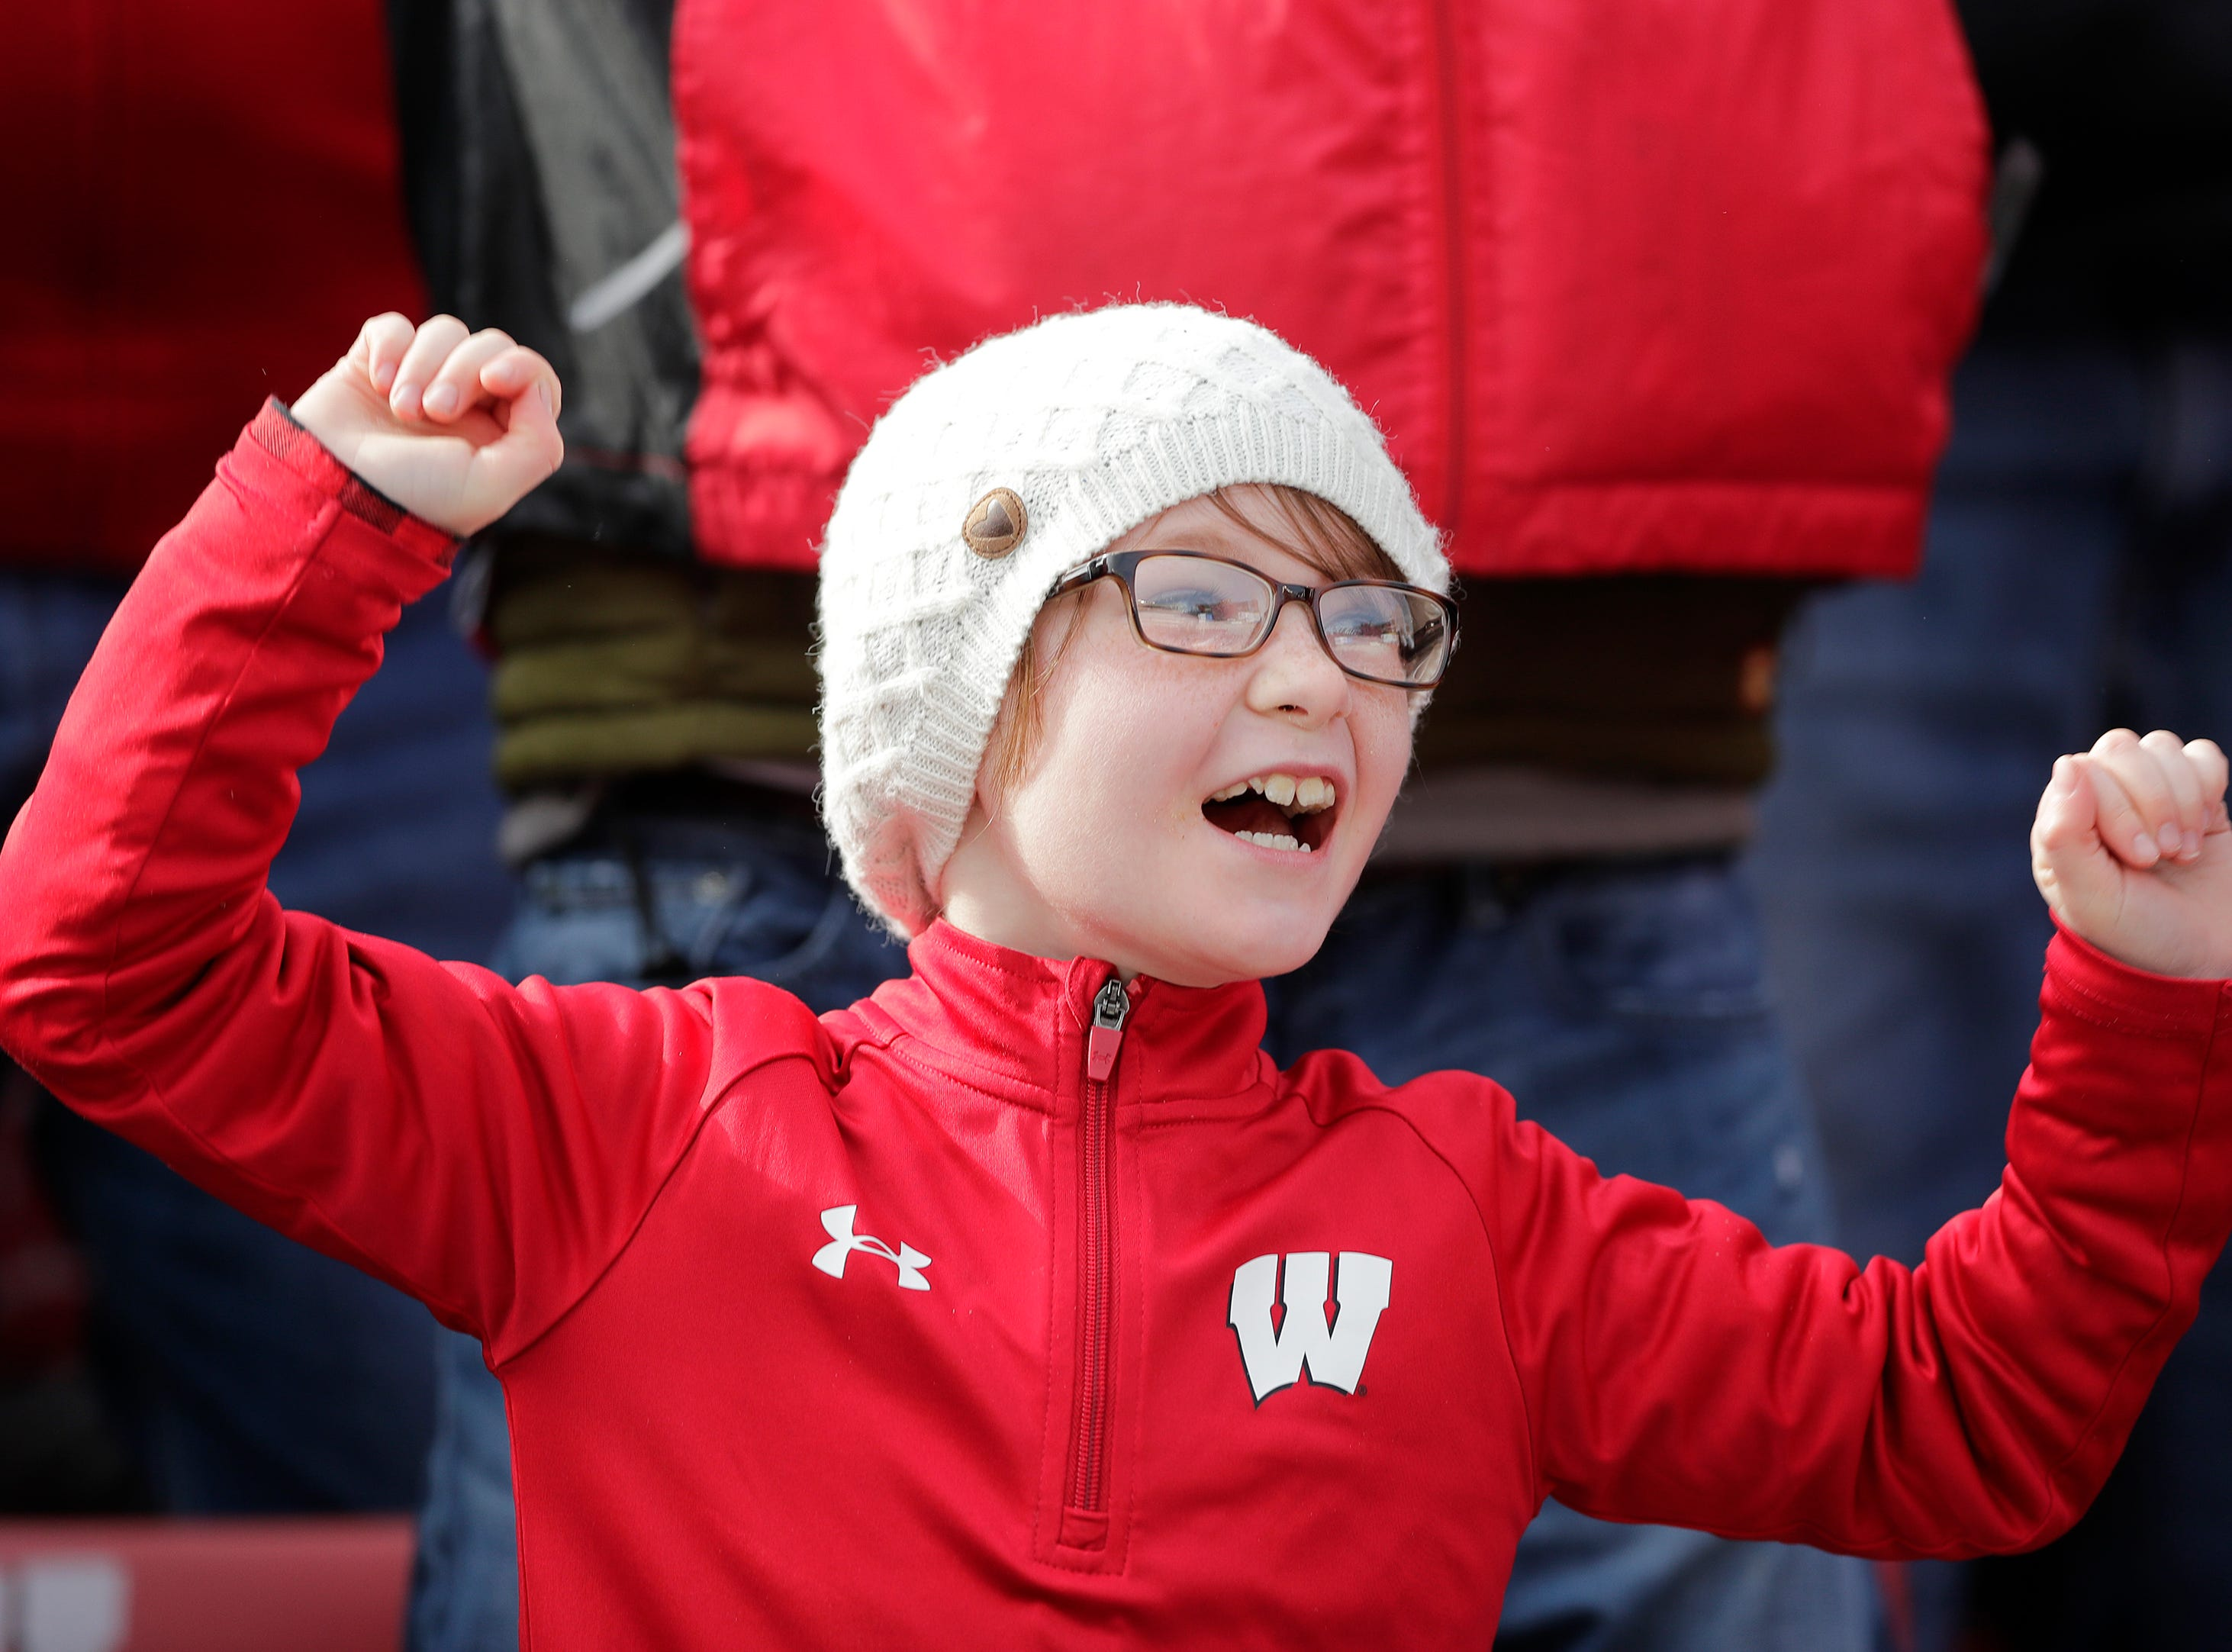 A young Wisconsin fan participates in 'Jump Around' at the end of the third quarter against the Rutgers Scarlet Knights in a Big Ten football game at Camp Randall Stadium on Saturday, November 3, 2018 in Madison, Wis.Adam Wesley/USA TODAY NETWORK-Wisconsin